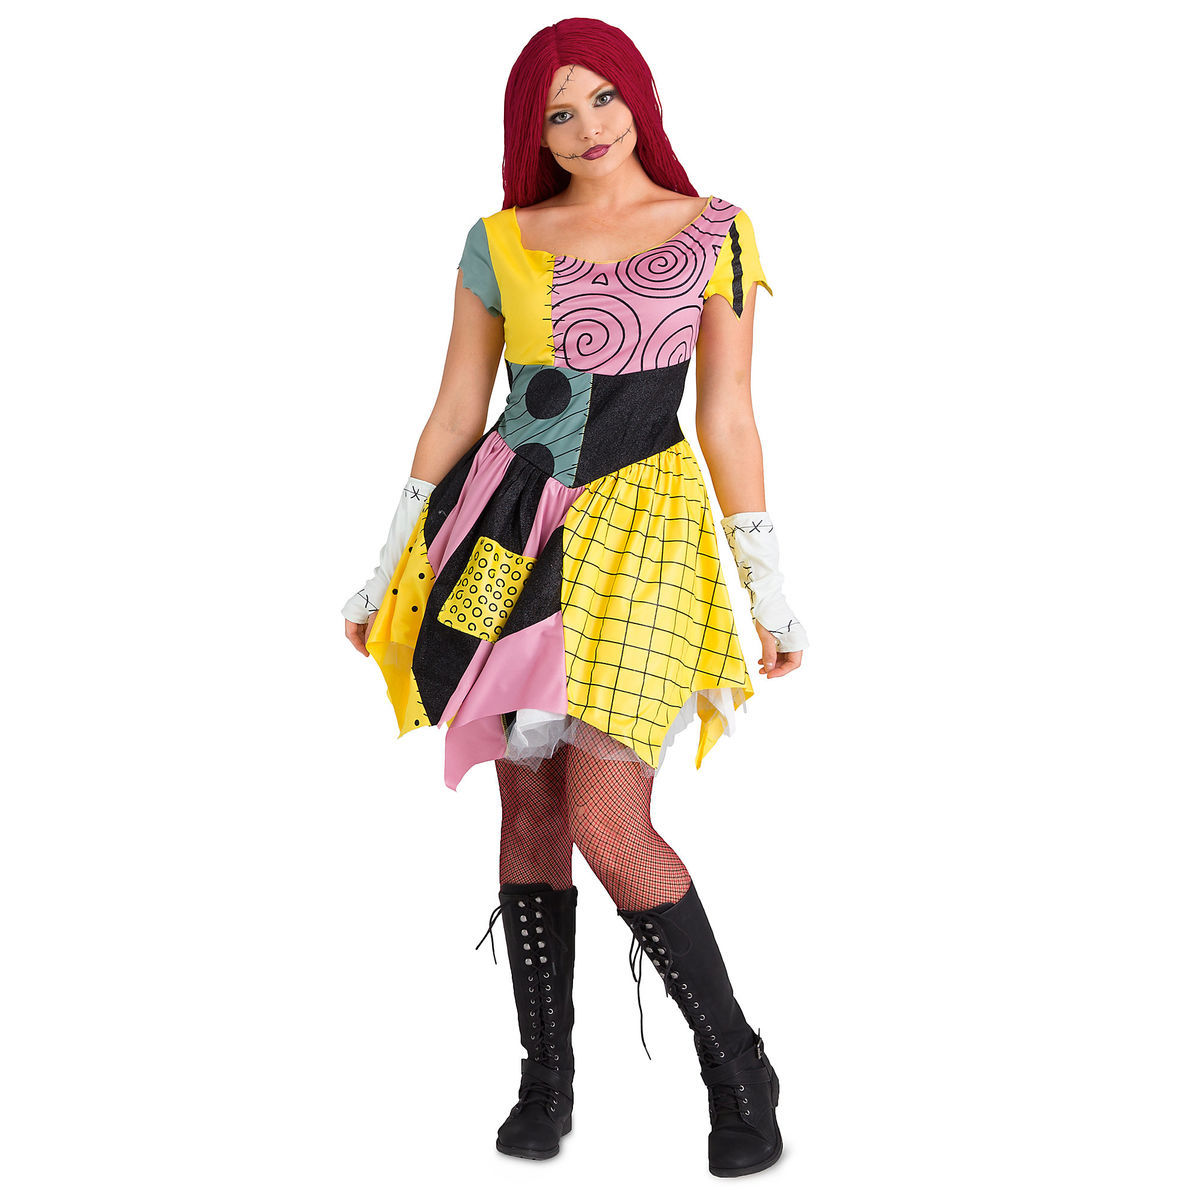 Sally Costume for Adults by Disguise | shopDisney